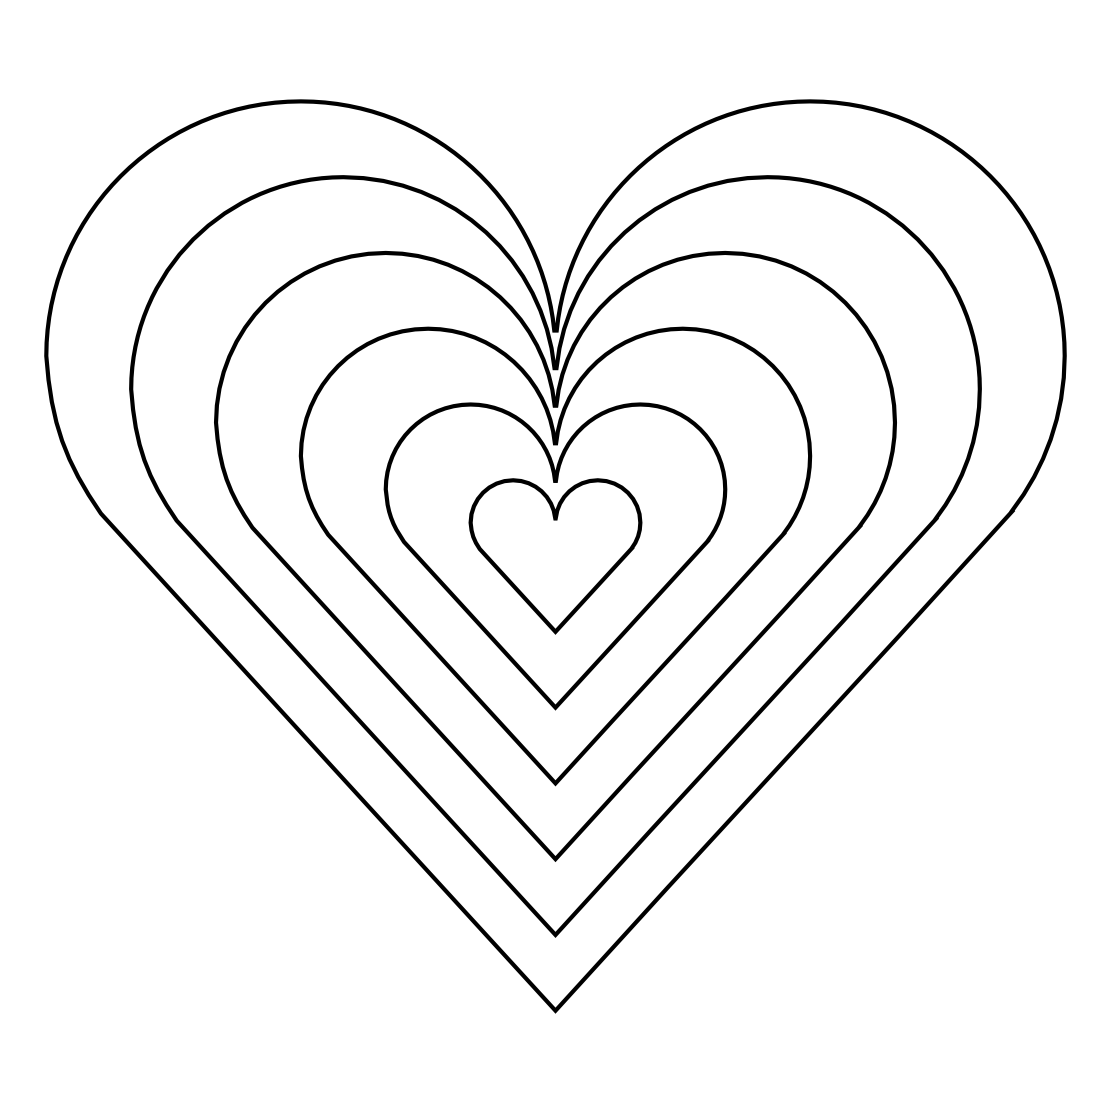 Rainbow Heart Coloring Pages